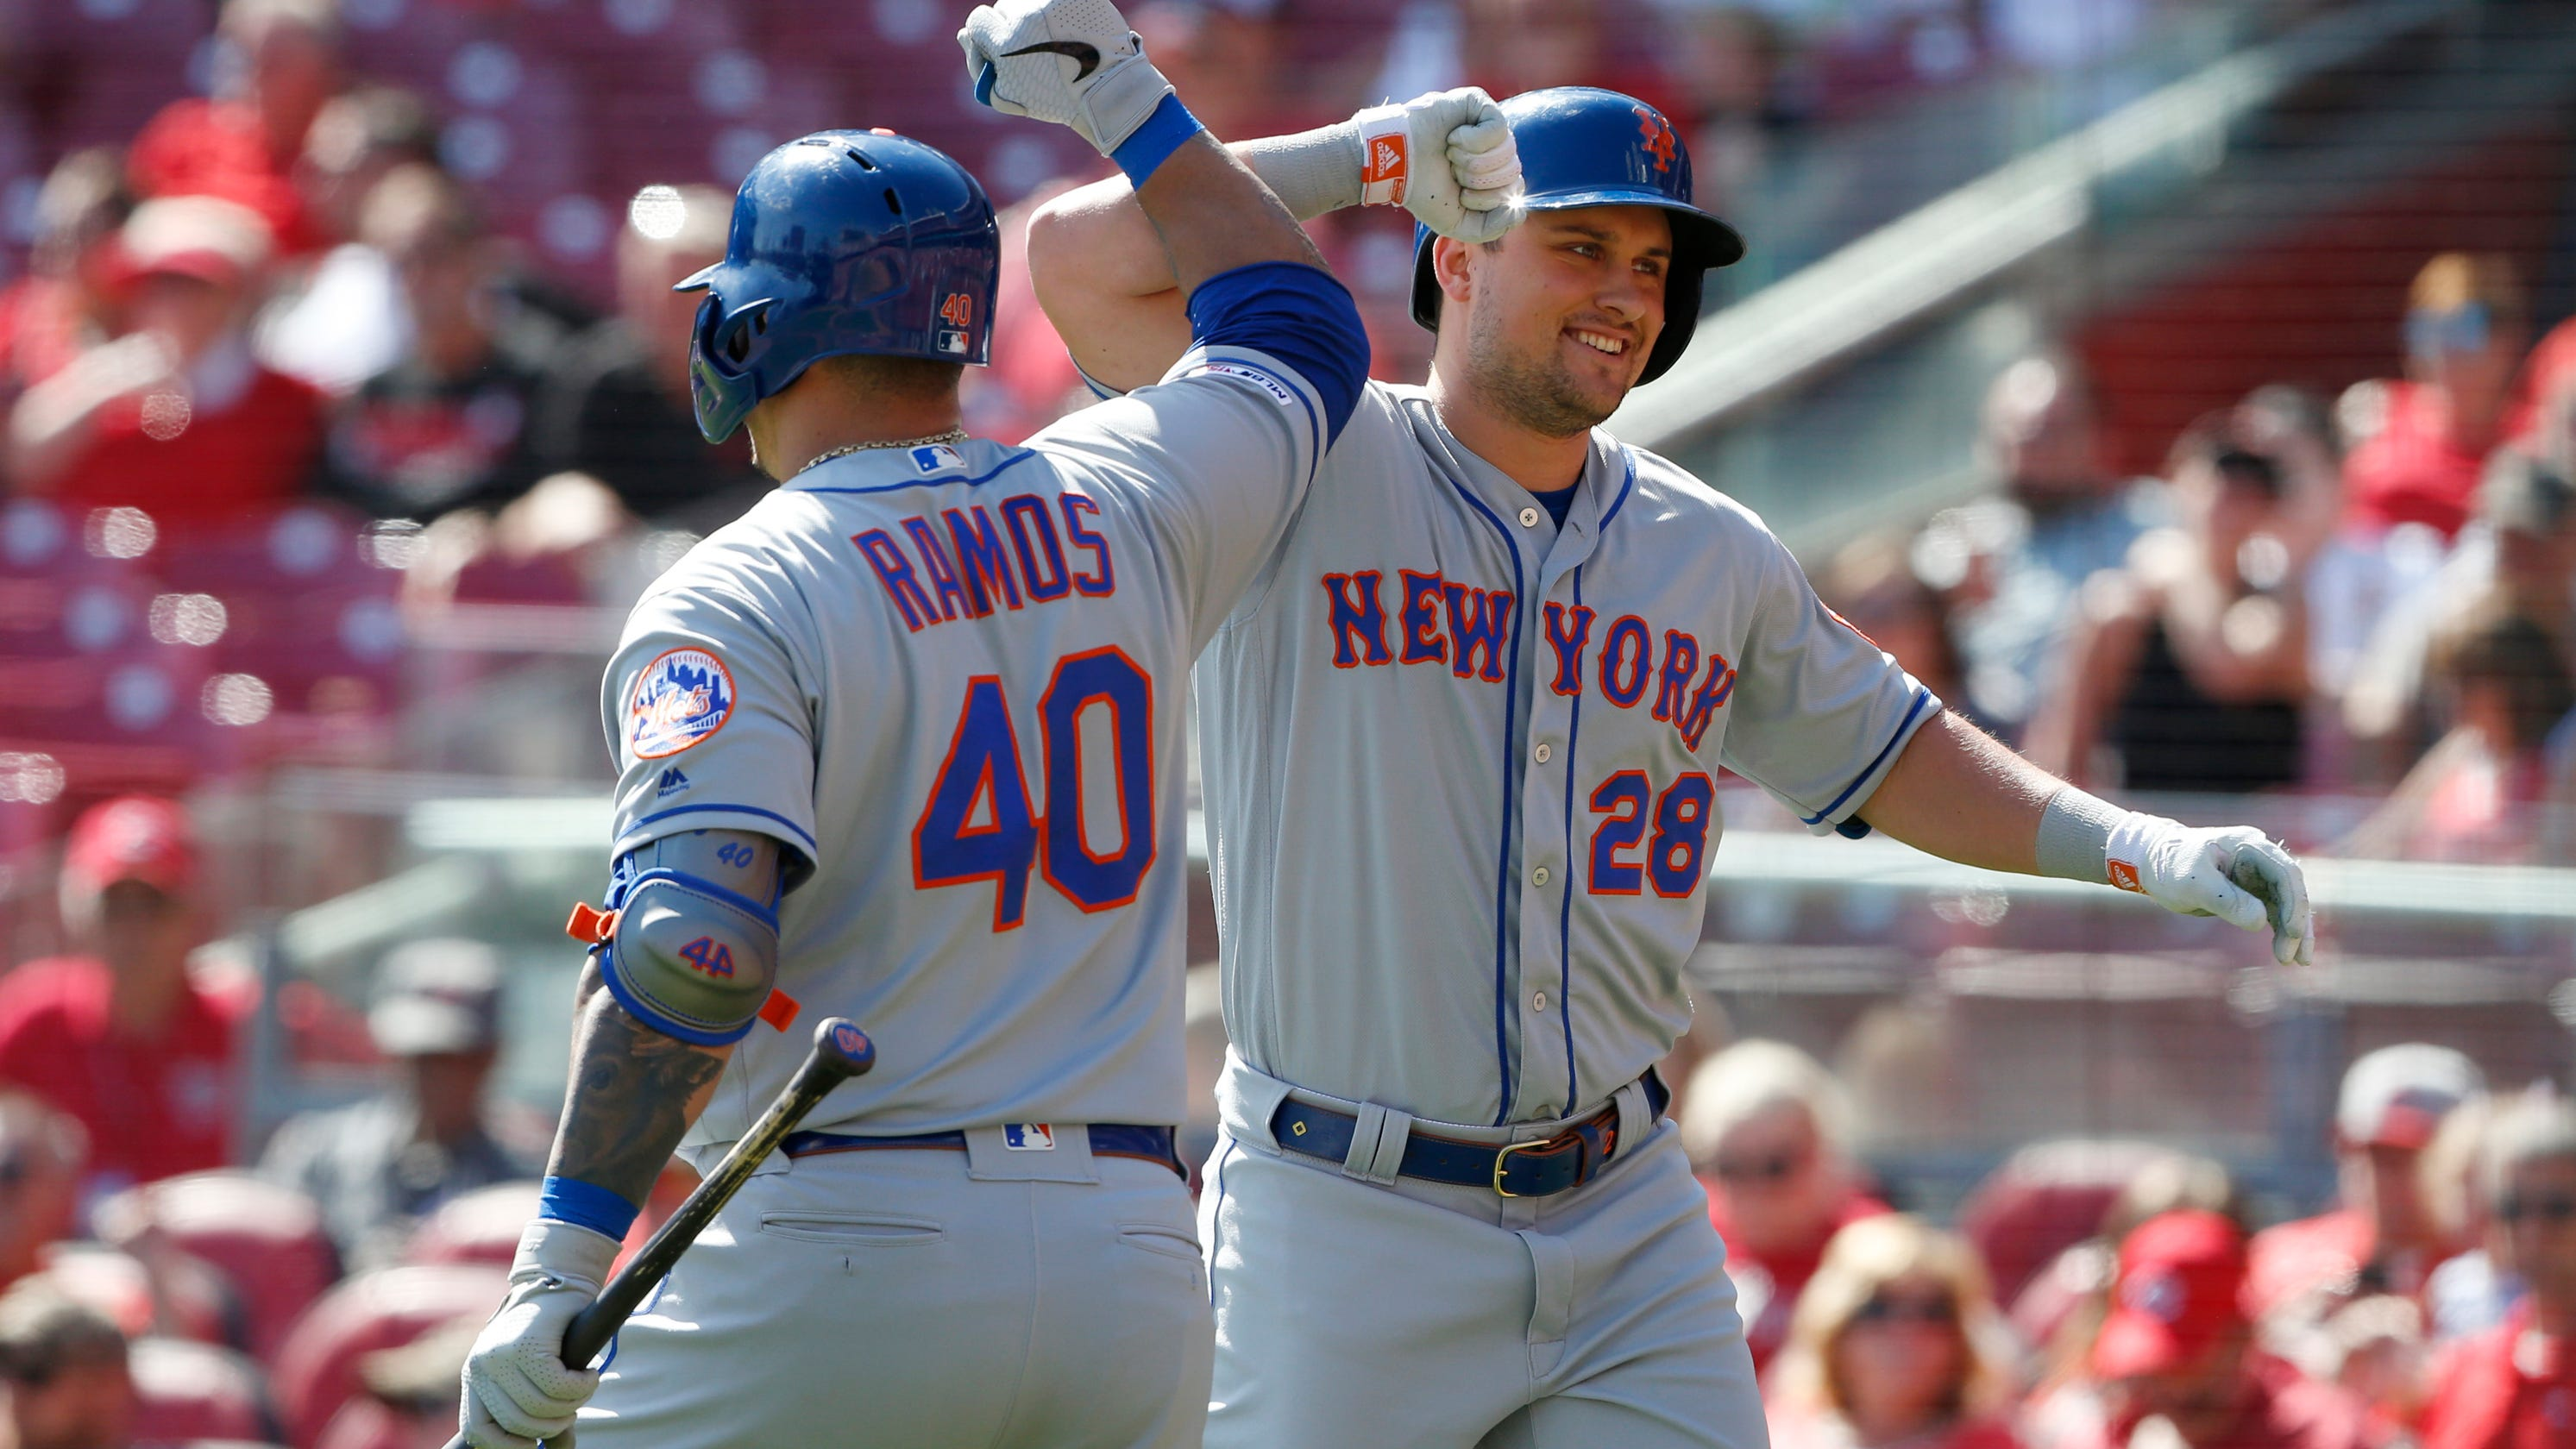 official photos 8c690 ce350 With a 6-3 win, Mets take series from Reds for interesting ...